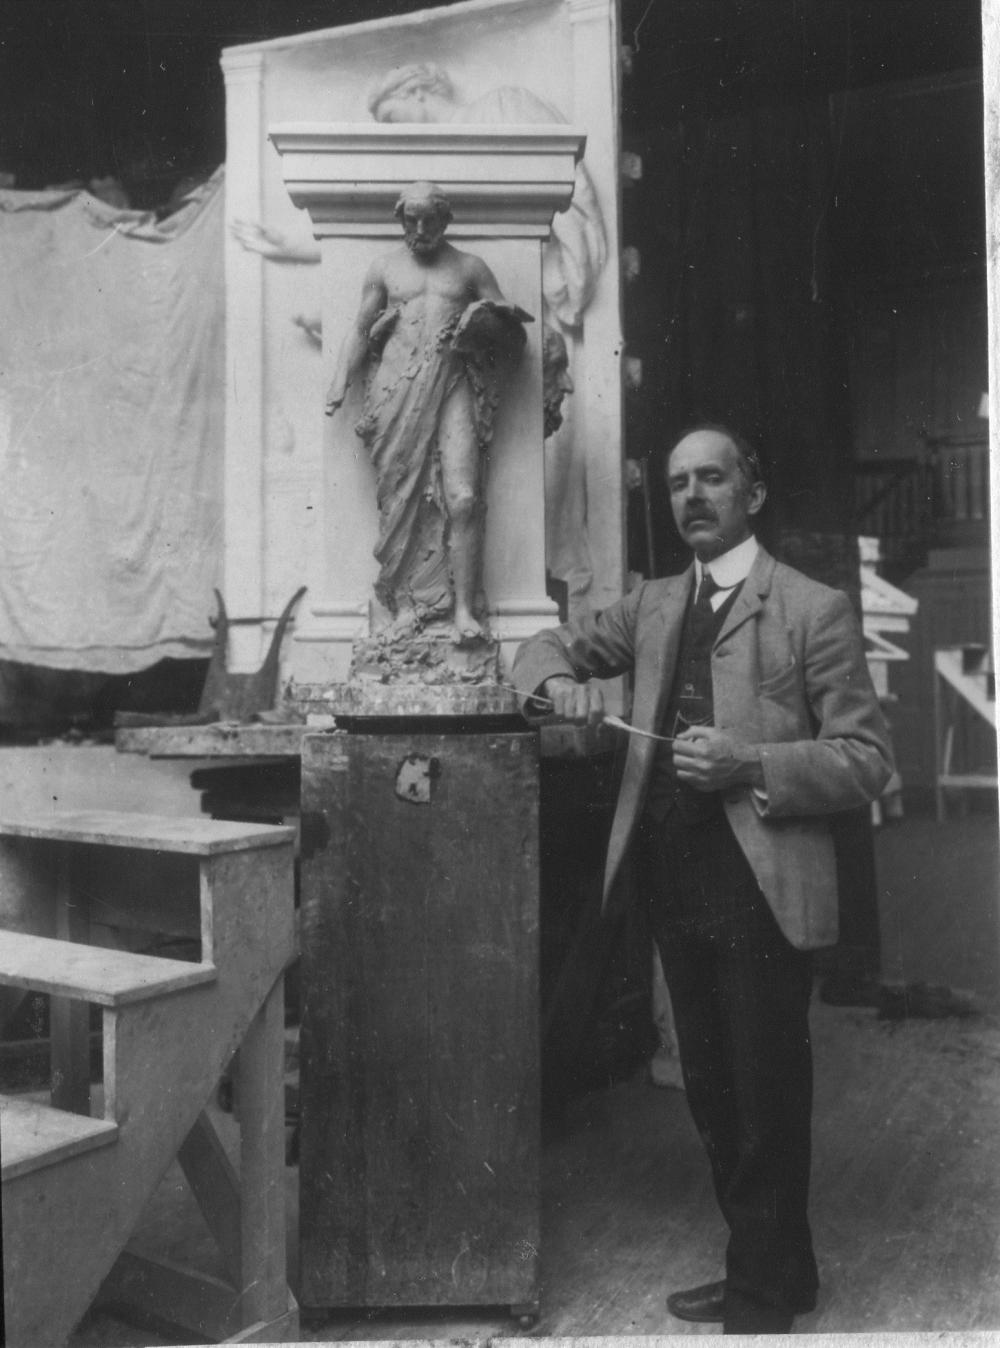 Daniel Chester French with model of Greek Epic Poetry in his NYC studio